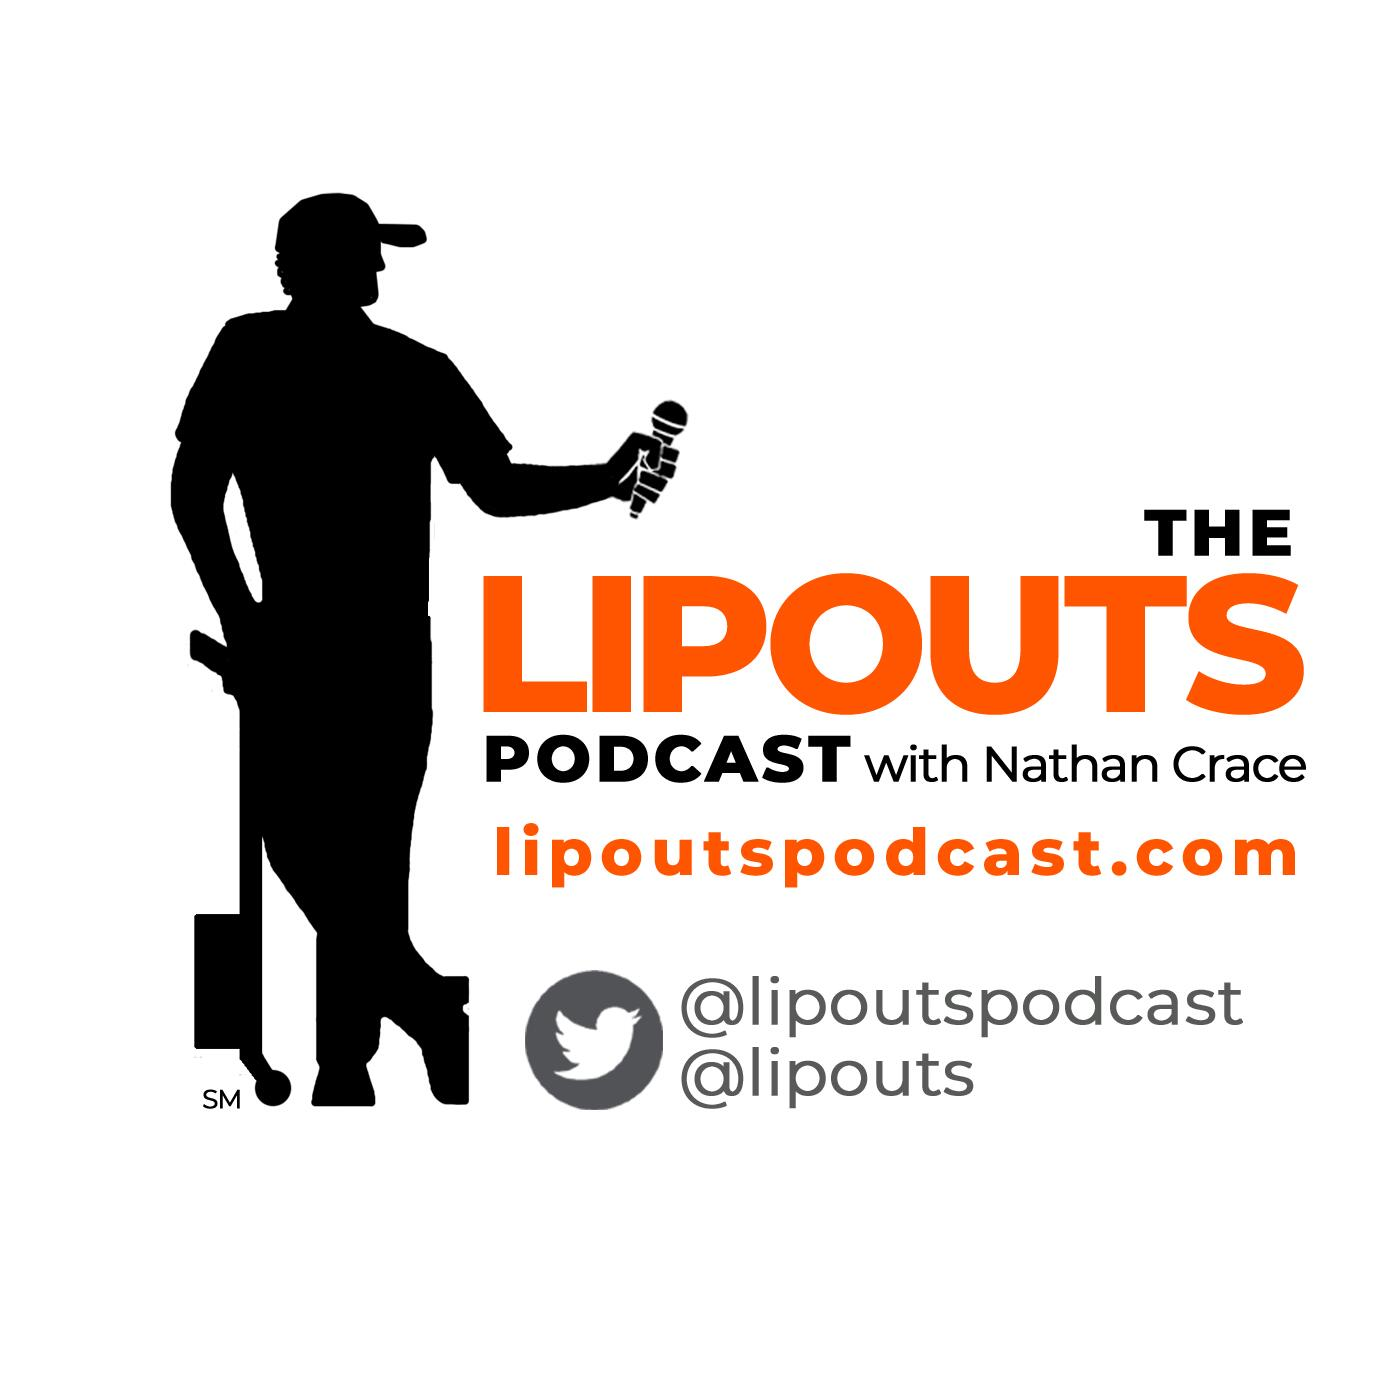 The Lipouts Podcast with Nathan Crace